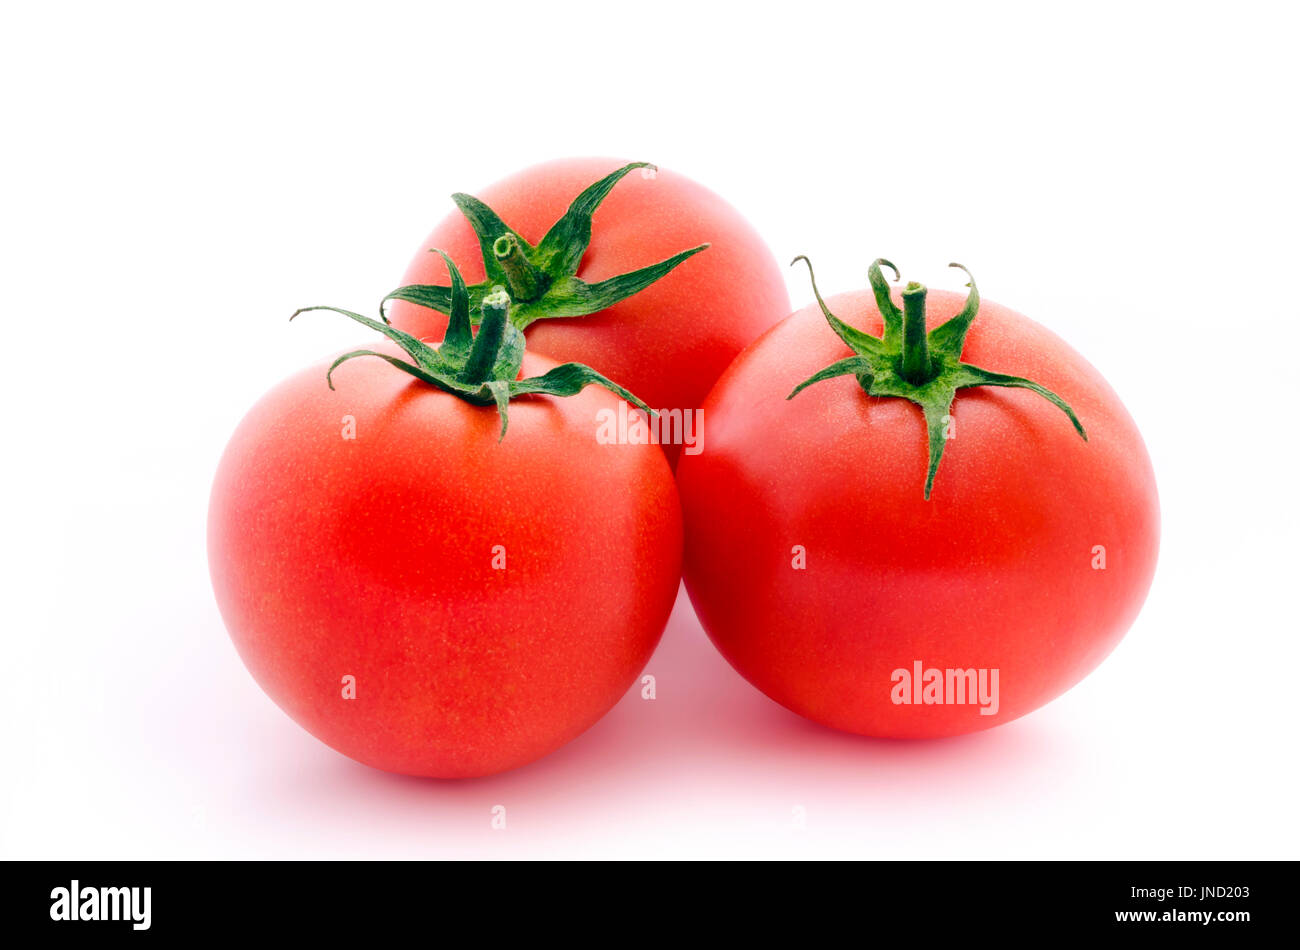 Three fresh raspberry tomatoes isolated on white background - Stock Image